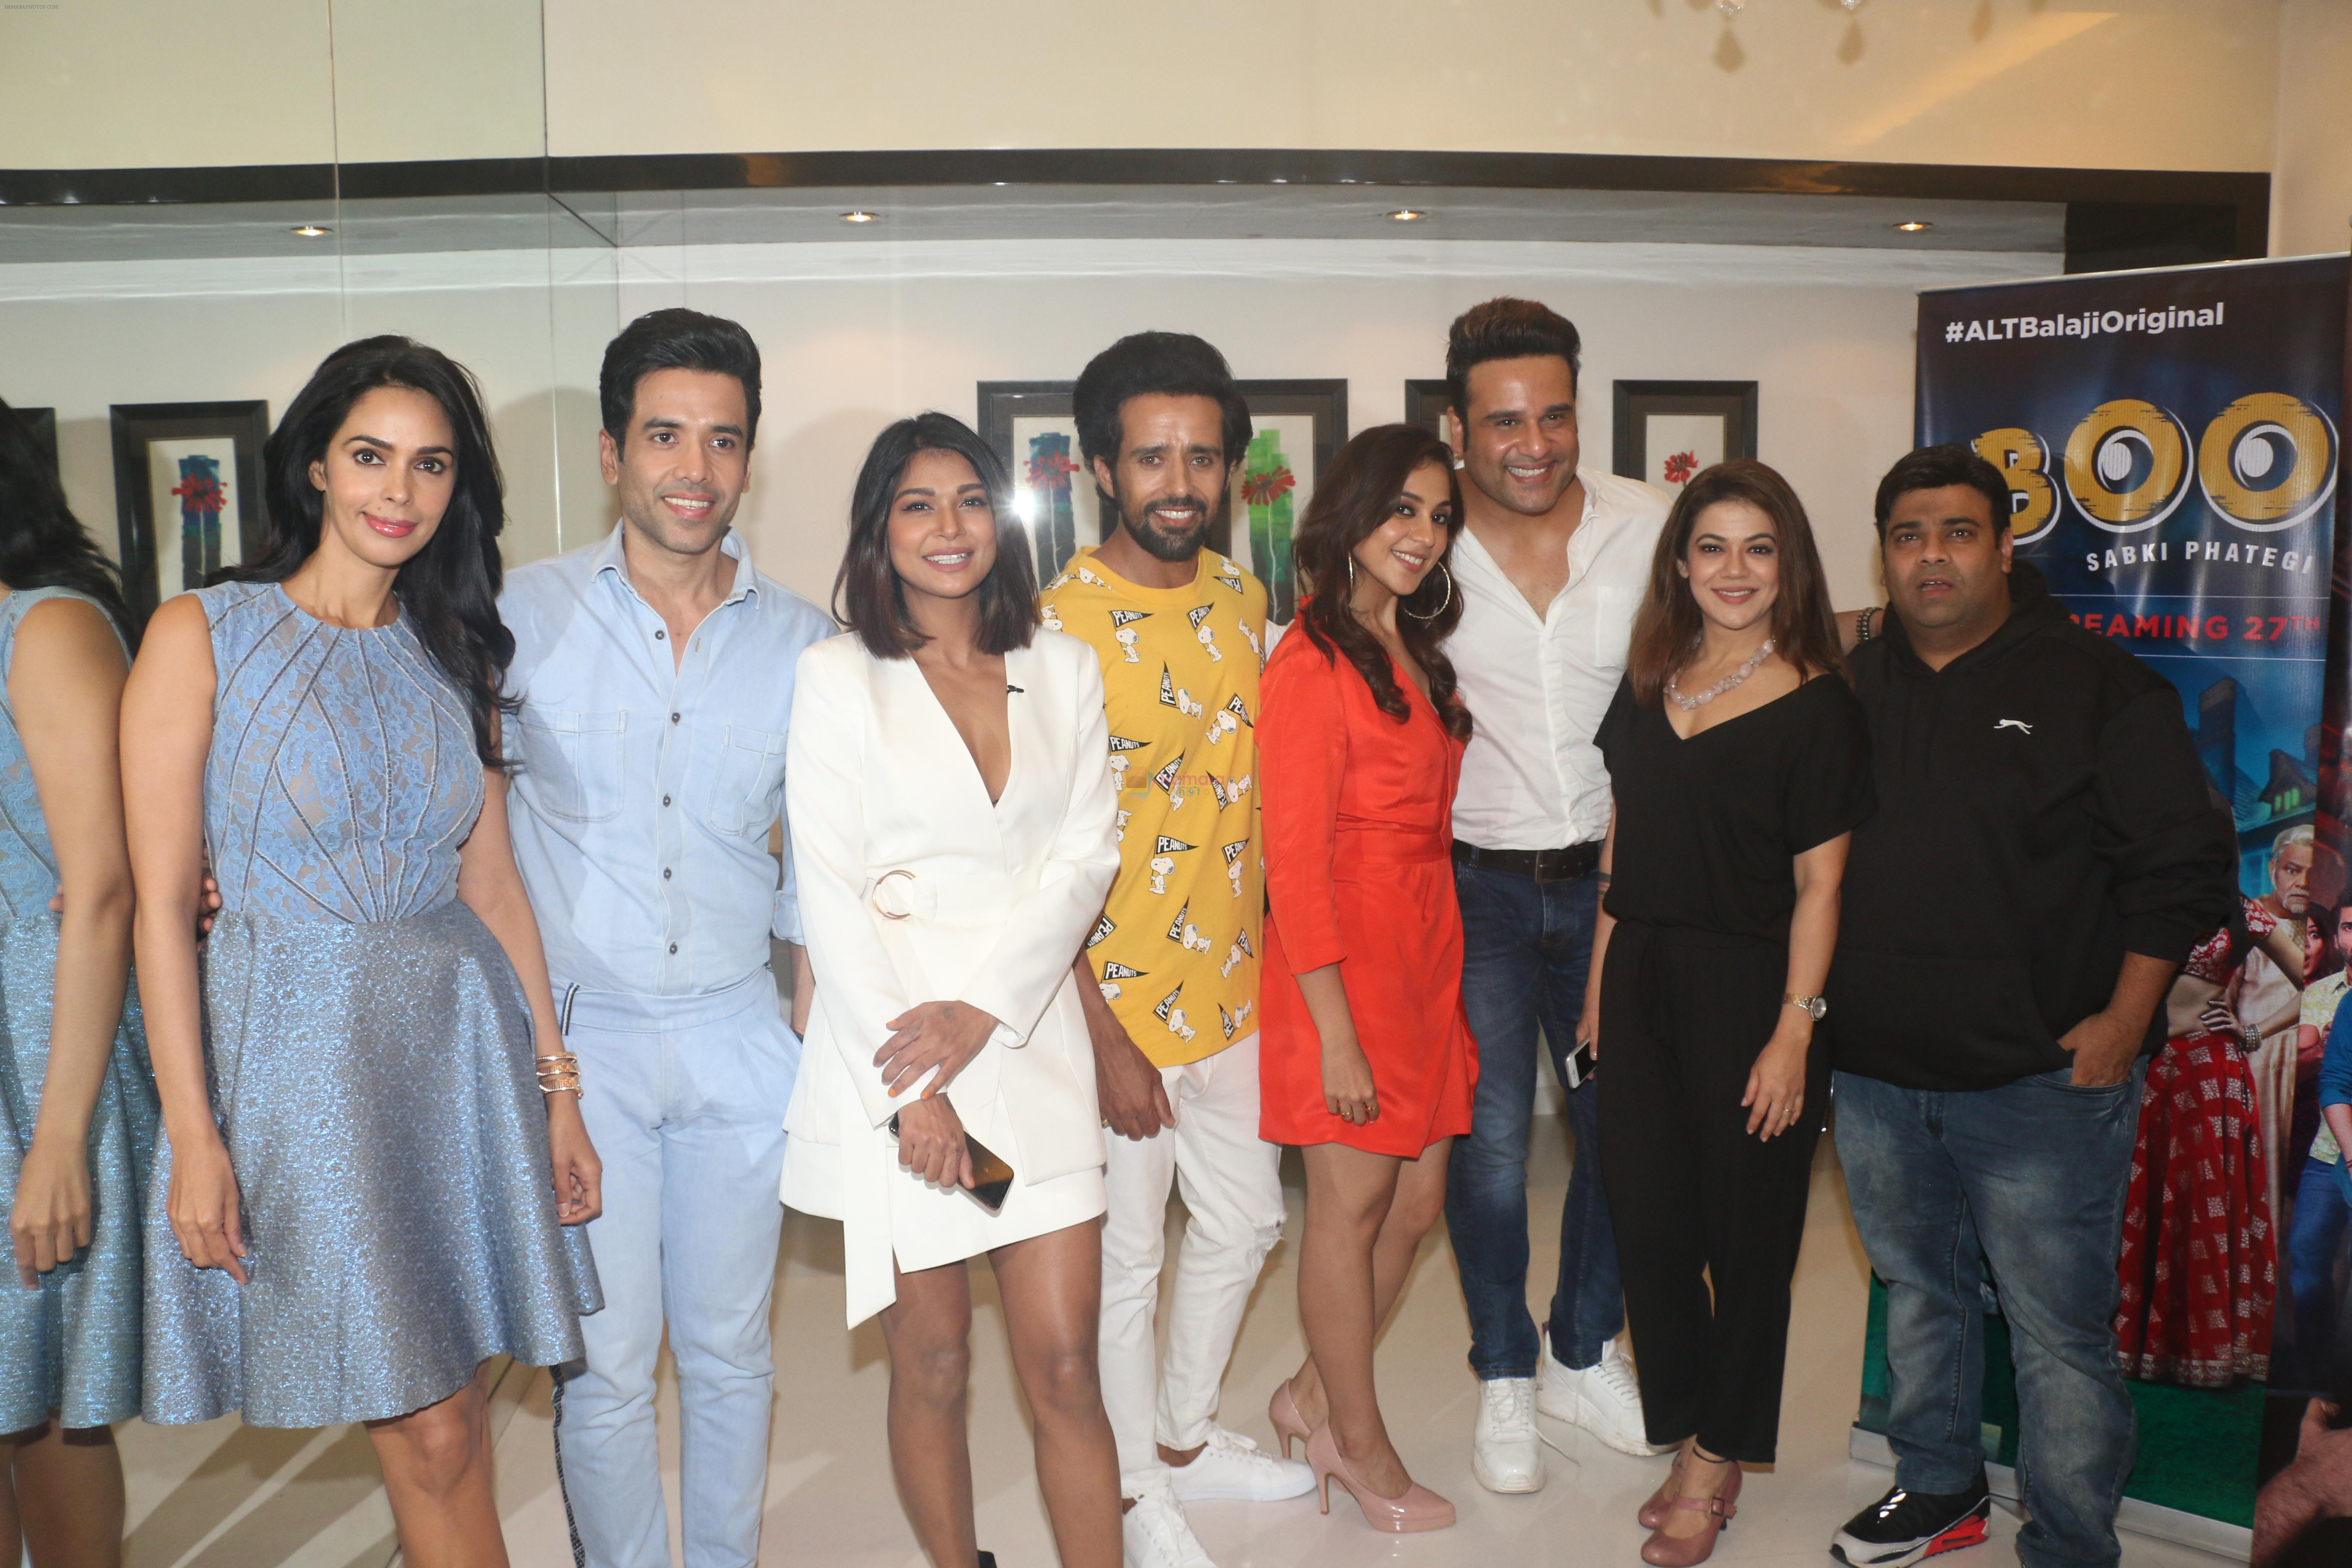 Tusshar Kapoor, Mallika Sherawat, Krishna Abhishek, Kiku Sharda at Media interactions of Alt Balaji's new web series Boo Sabki Phategi in Krishna Bunglow, juhu on 24th June 2019